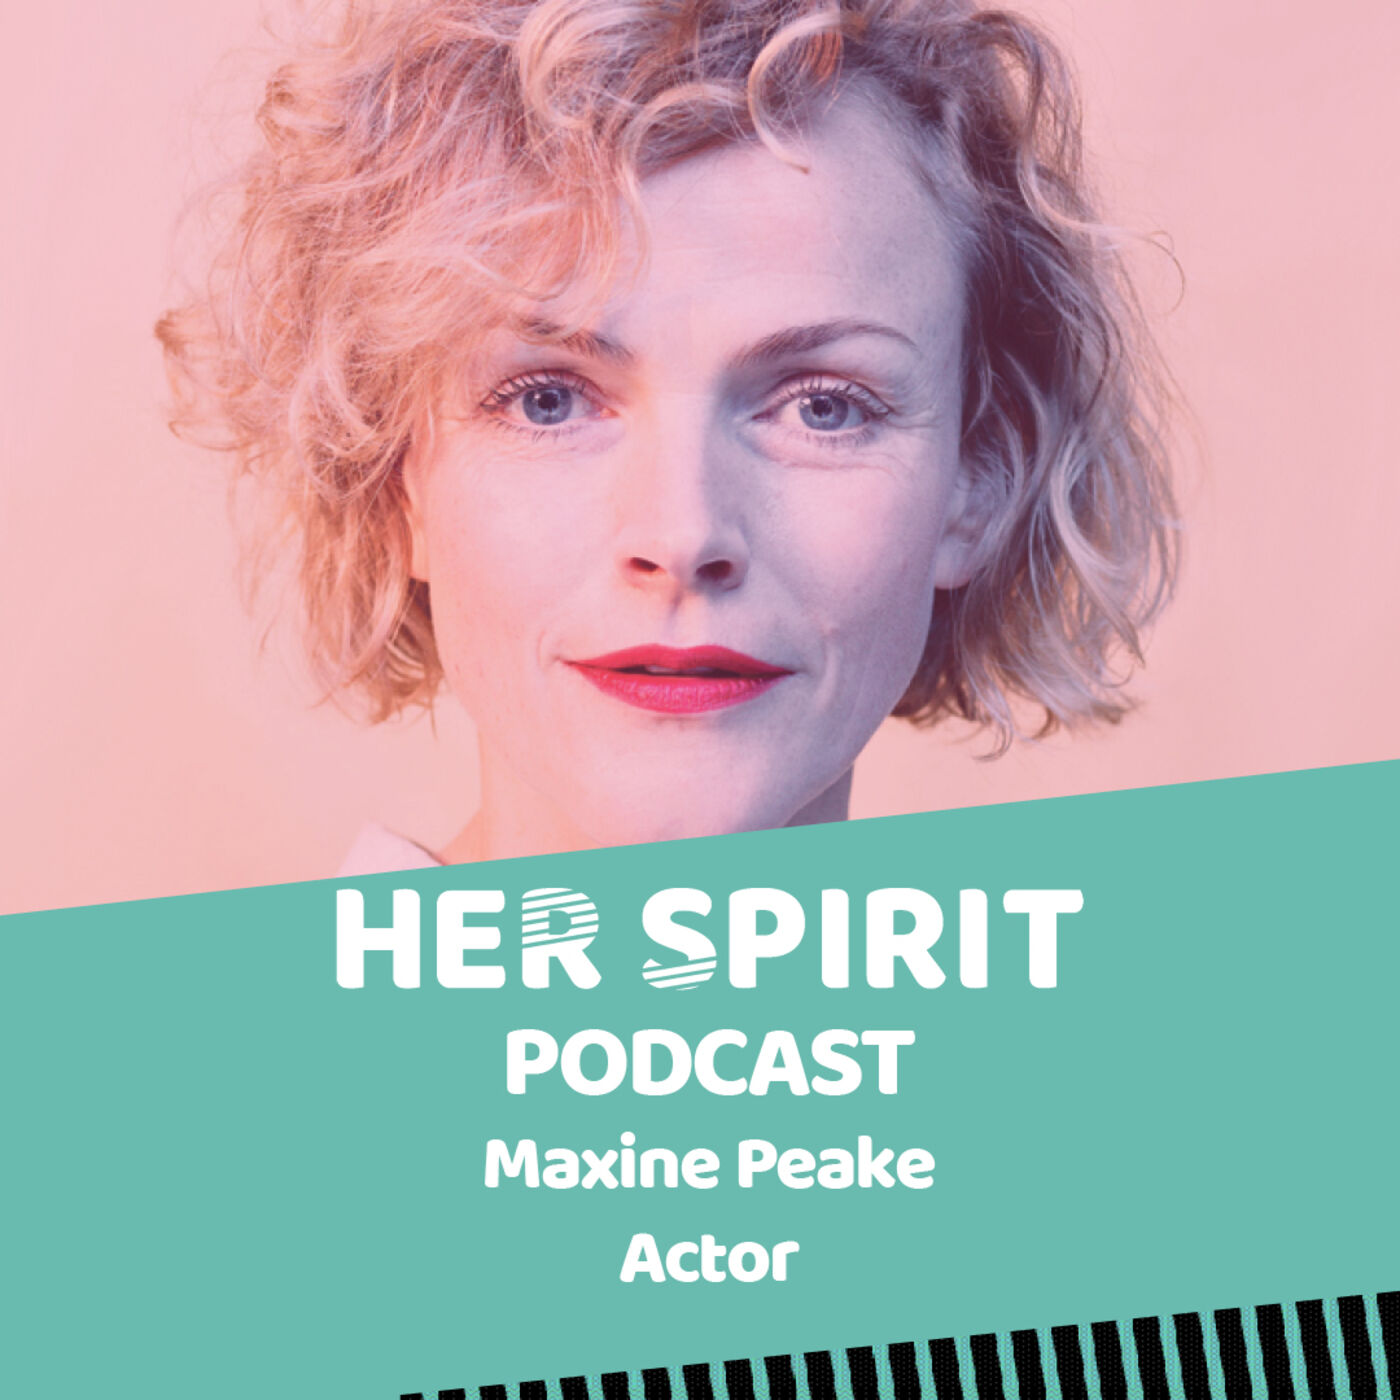 Actor Maxine Peake talks to Annie and Louise about her life as an actor, love of cycling and passion for life and people